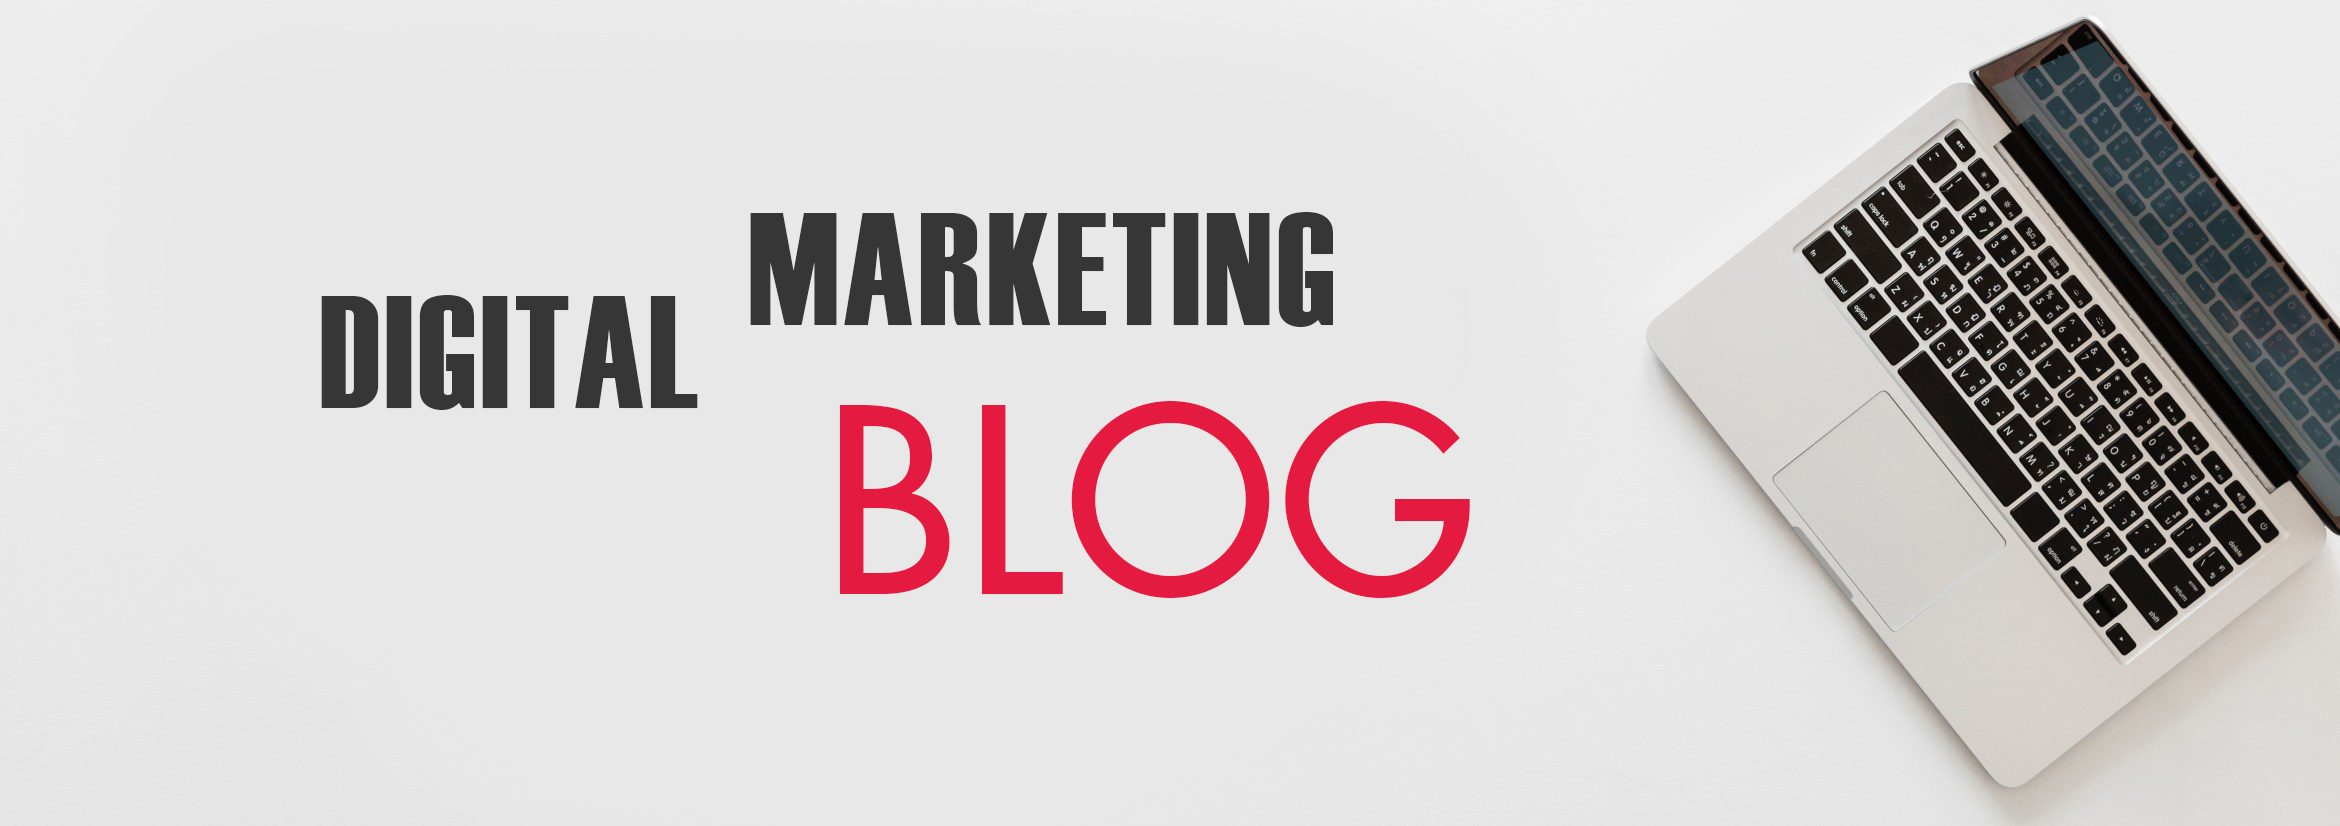 blog-pamelabernsteiner-digital-marketing